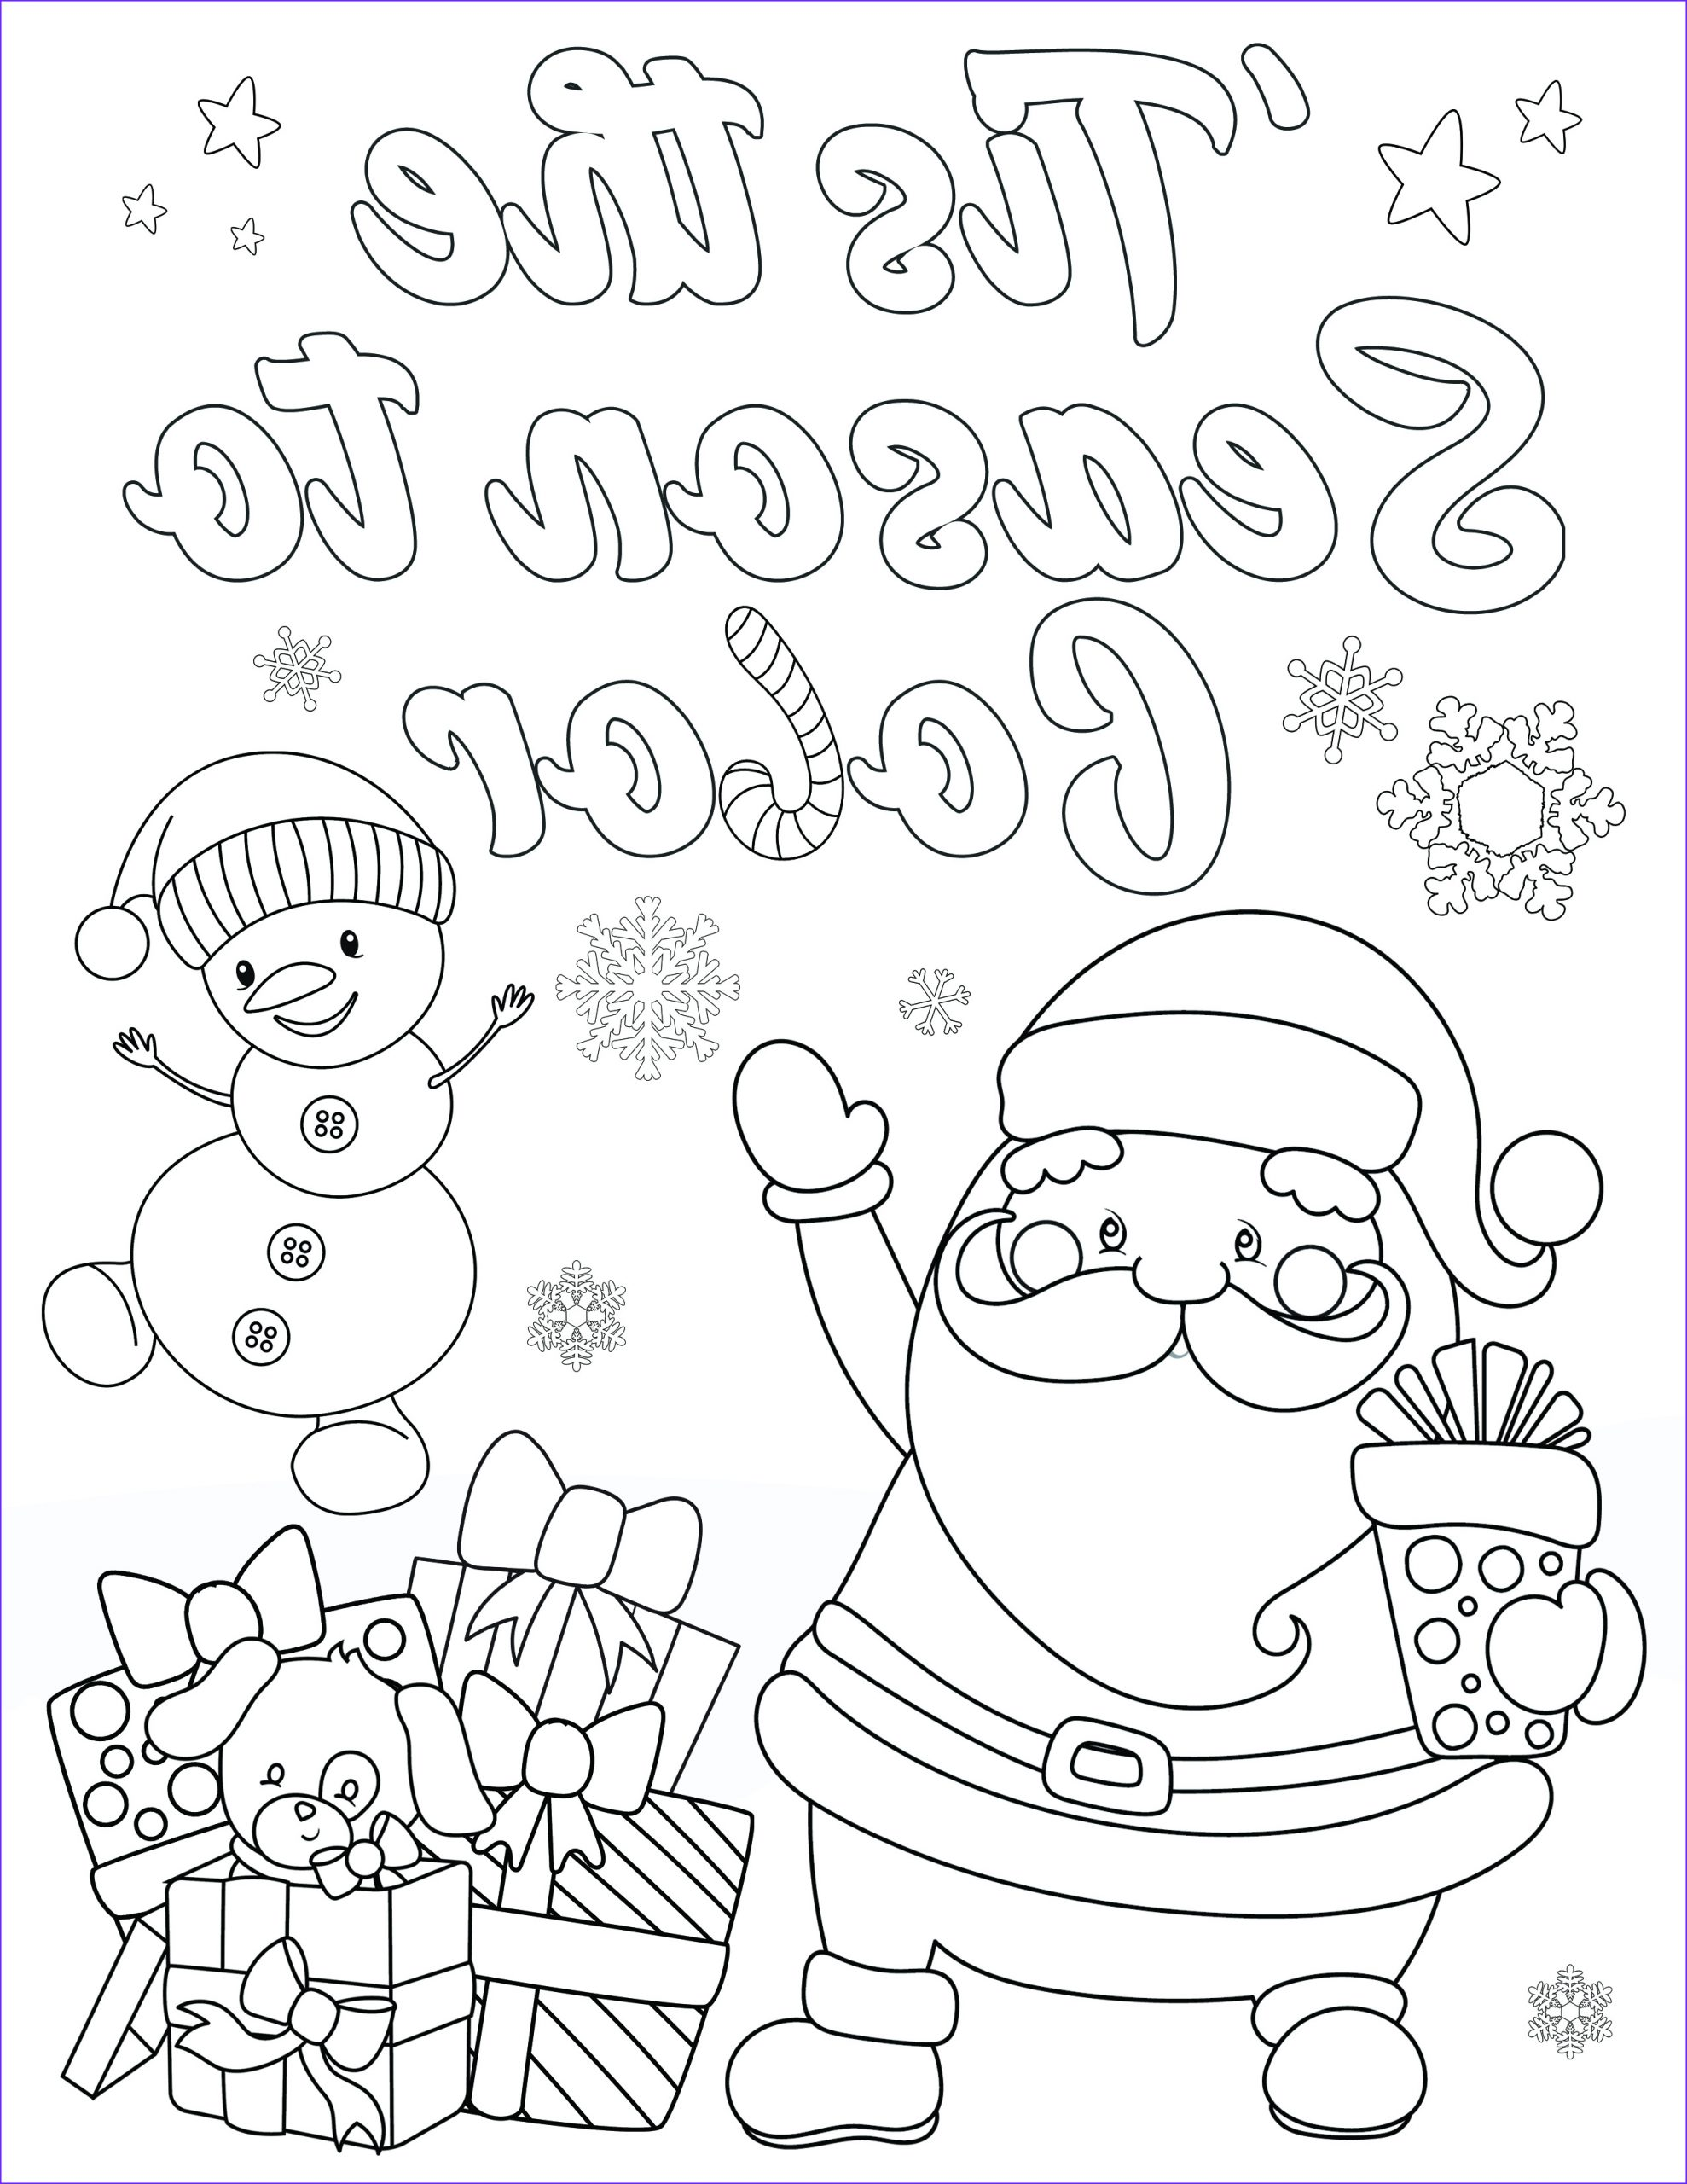 Christmas Coloring Page for Preschoolers Best Of Images Free Christmas Coloring Pages for Adults and Kids